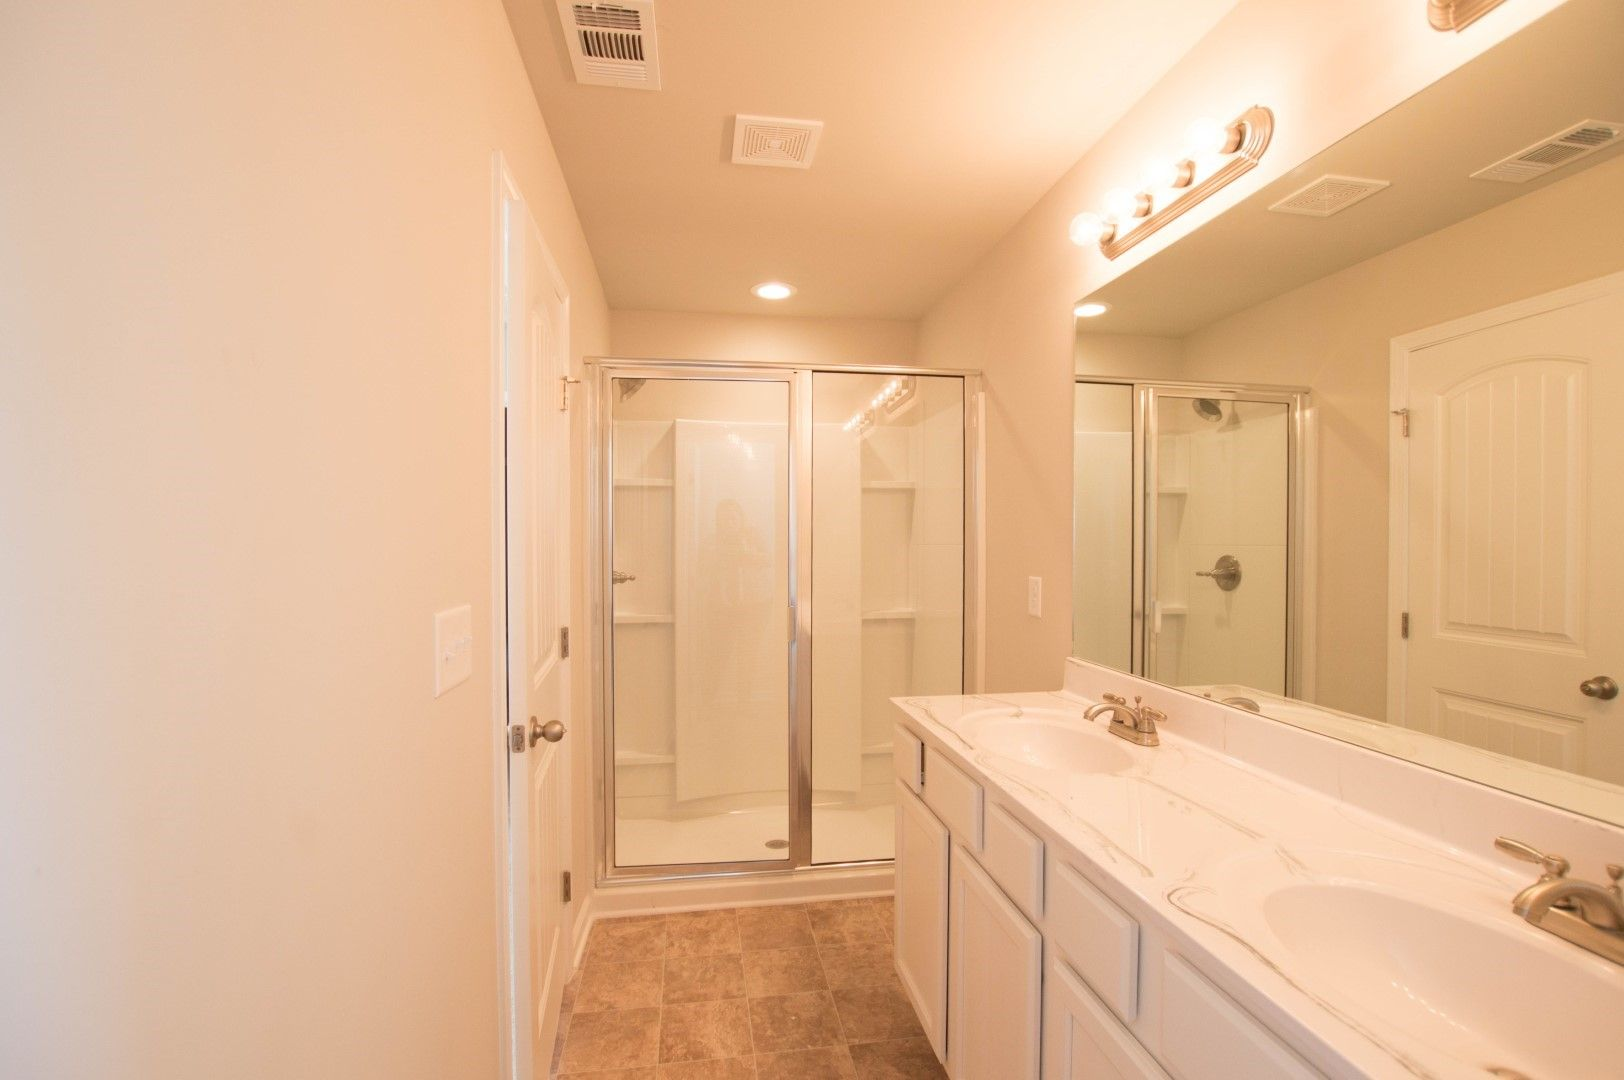 Bathroom featured in the Winston By Piedmont Residential in Atlanta, GA